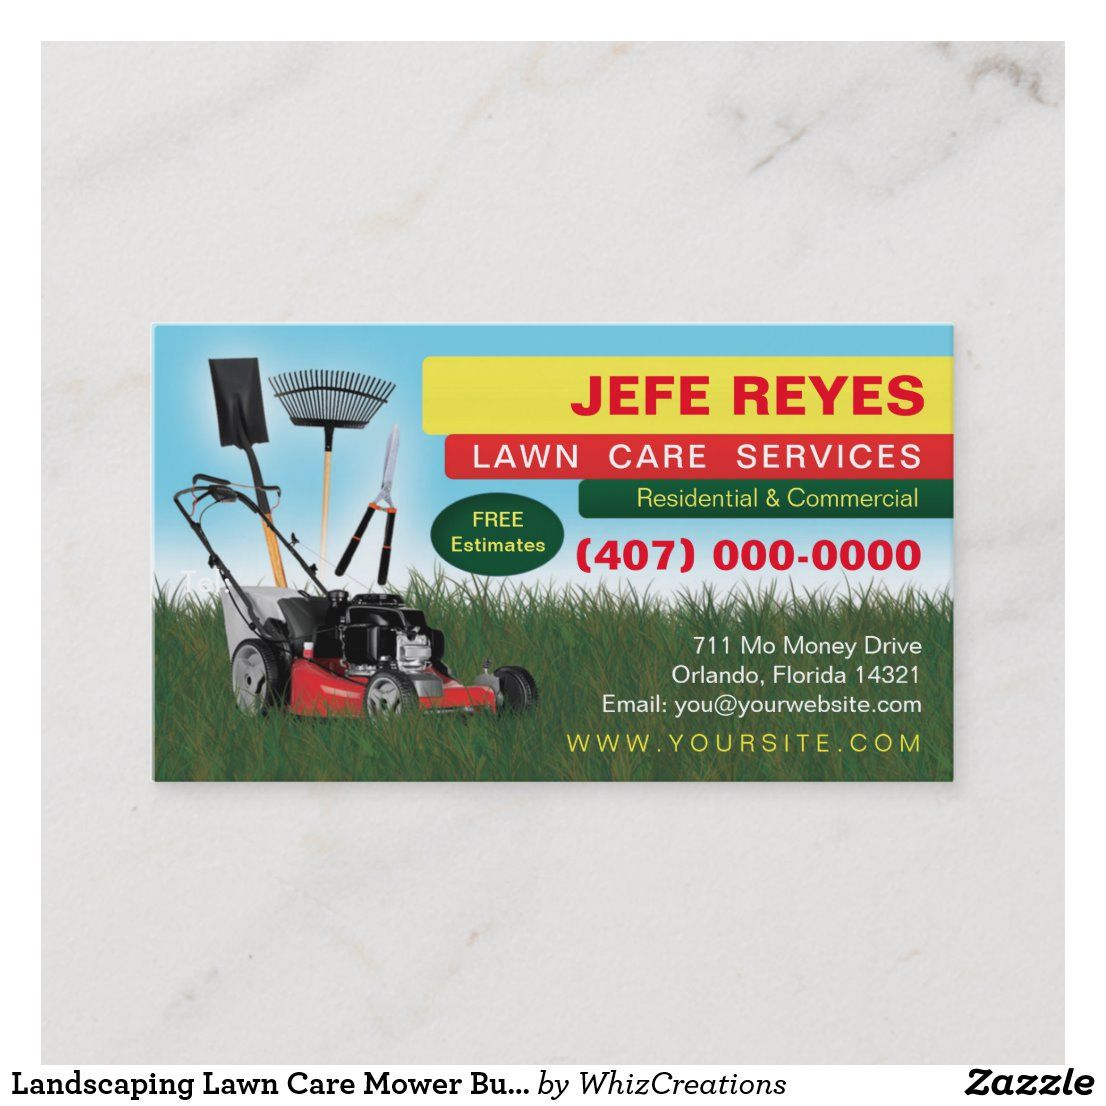 Landscaping Lawn Care Mower Business Card Template Zazzle Com Lawn Care Business Cards Lawn Care Business Lawn Care